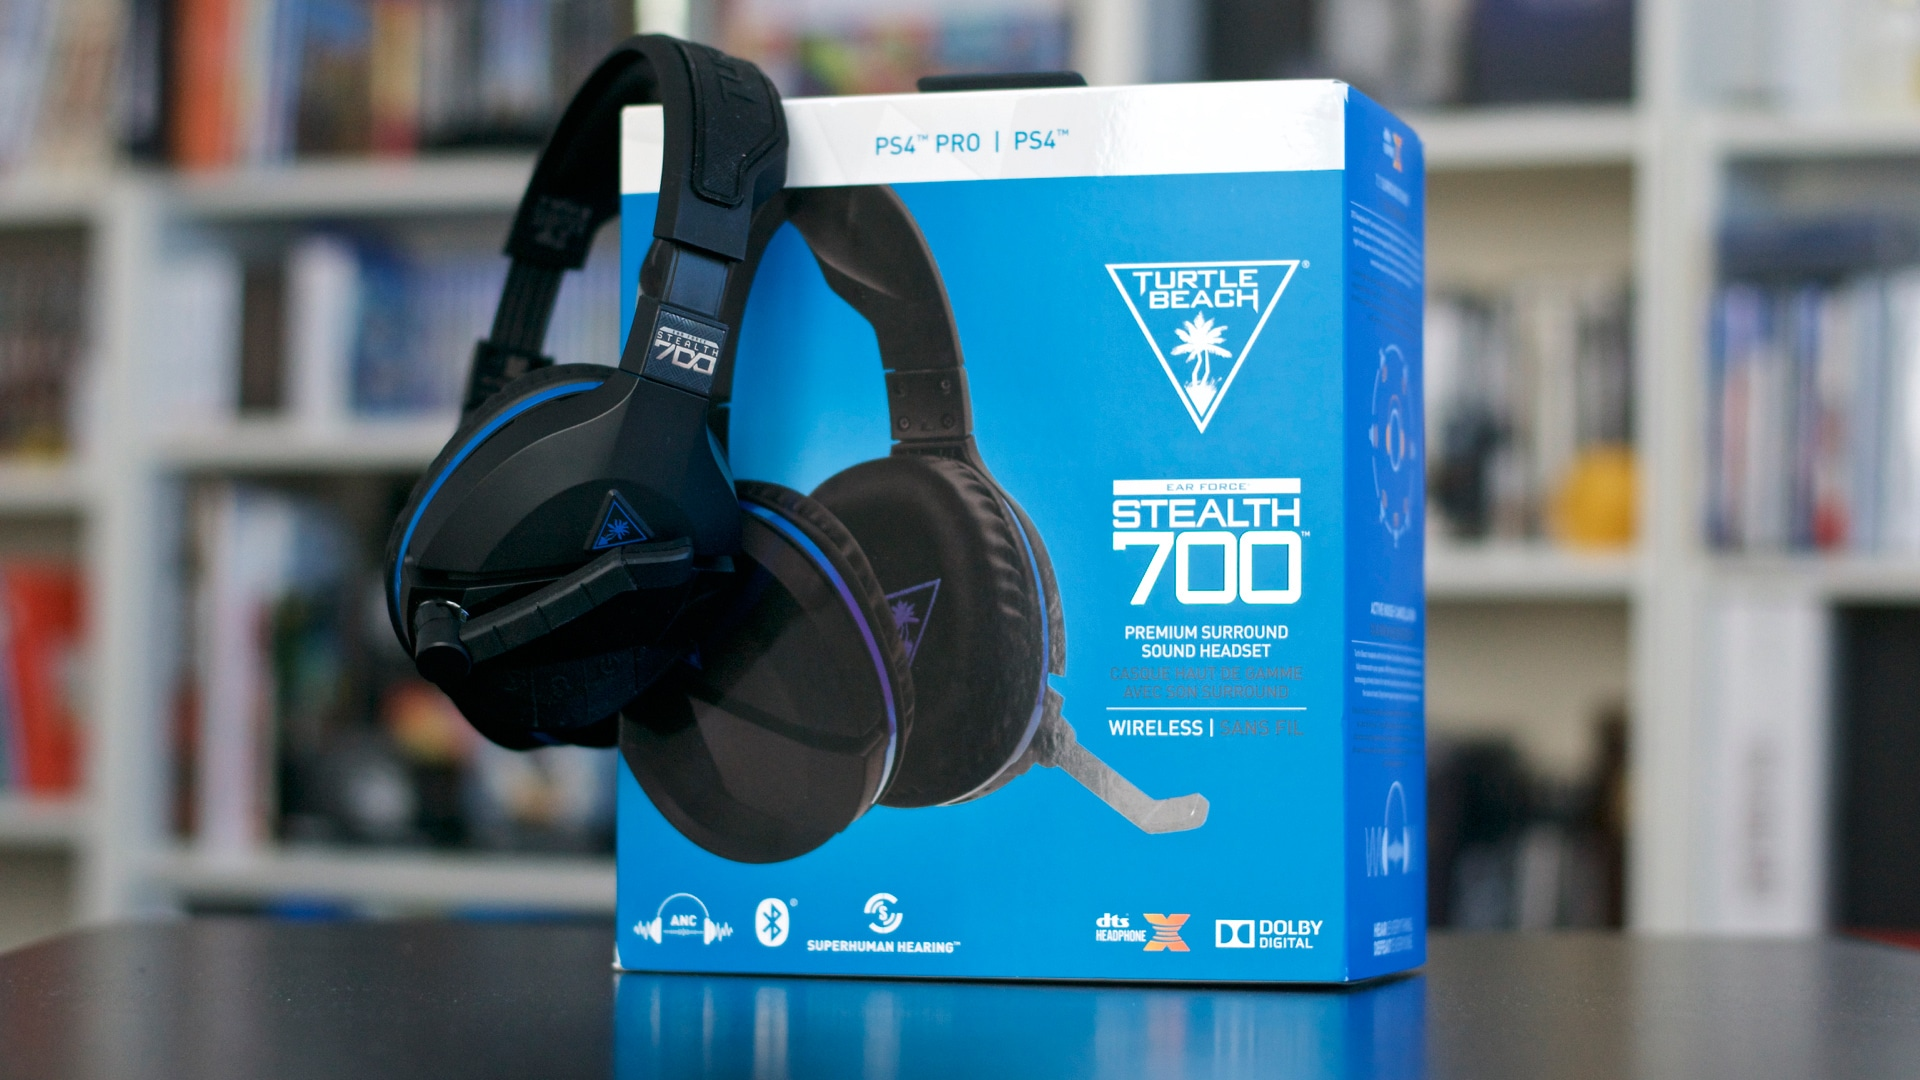 avis casque sans fil turtle beach stealth 700 ps4 high. Black Bedroom Furniture Sets. Home Design Ideas